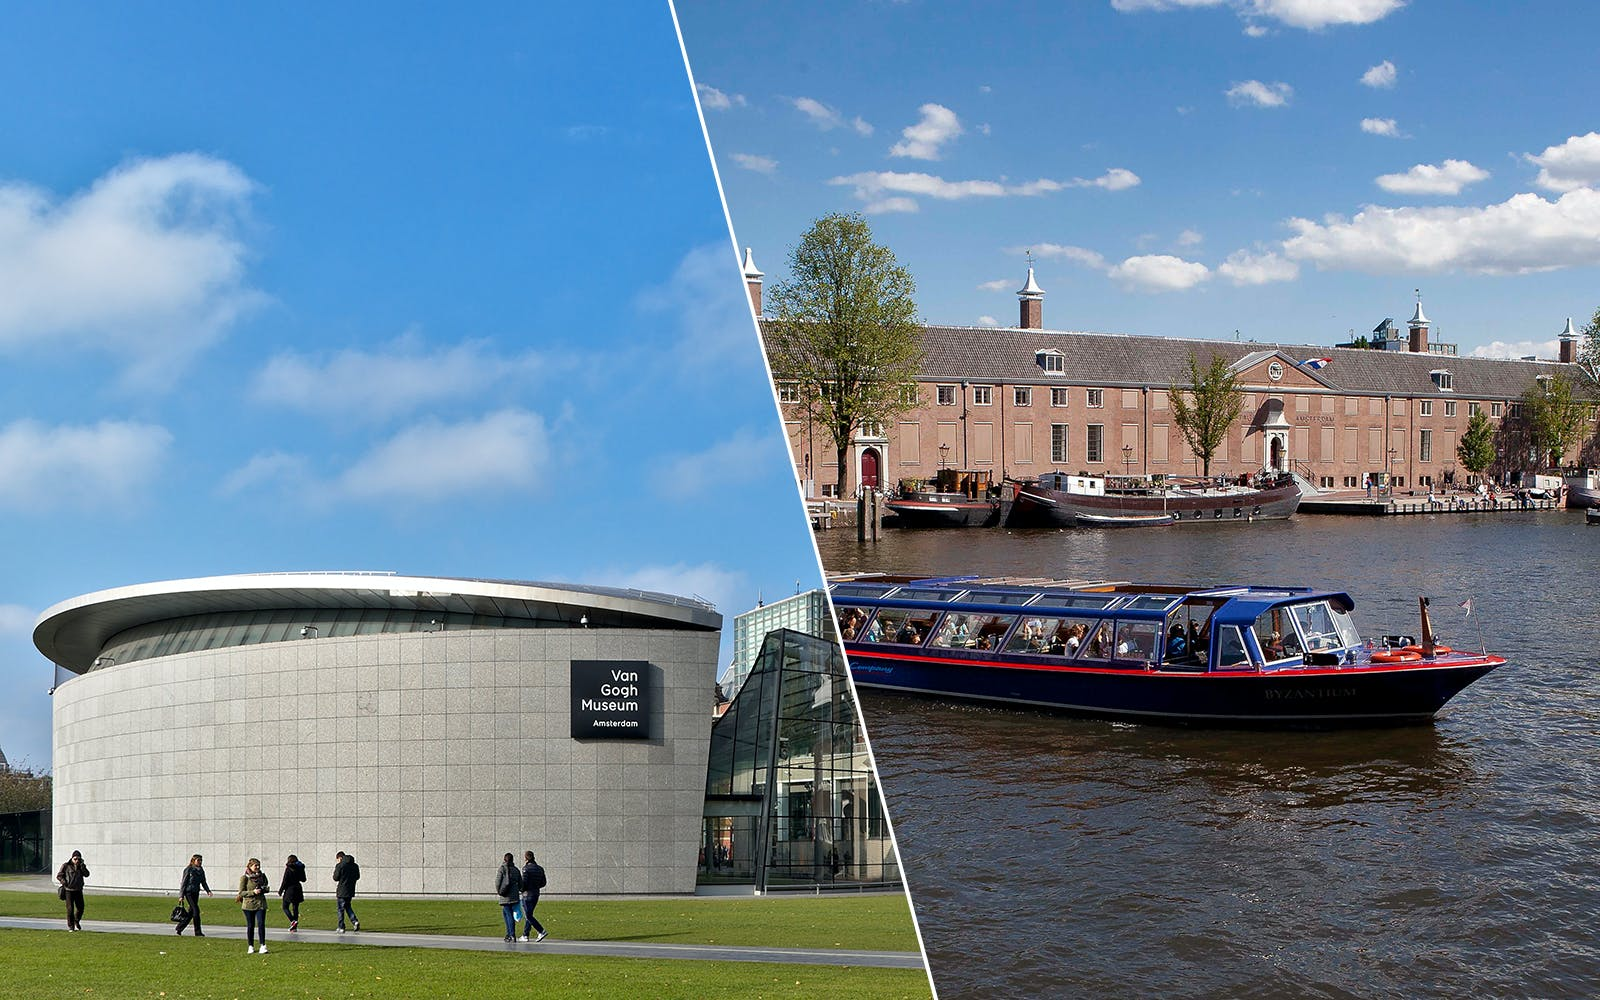 City Canal Cruise & Van Gogh Museum Direct Entry